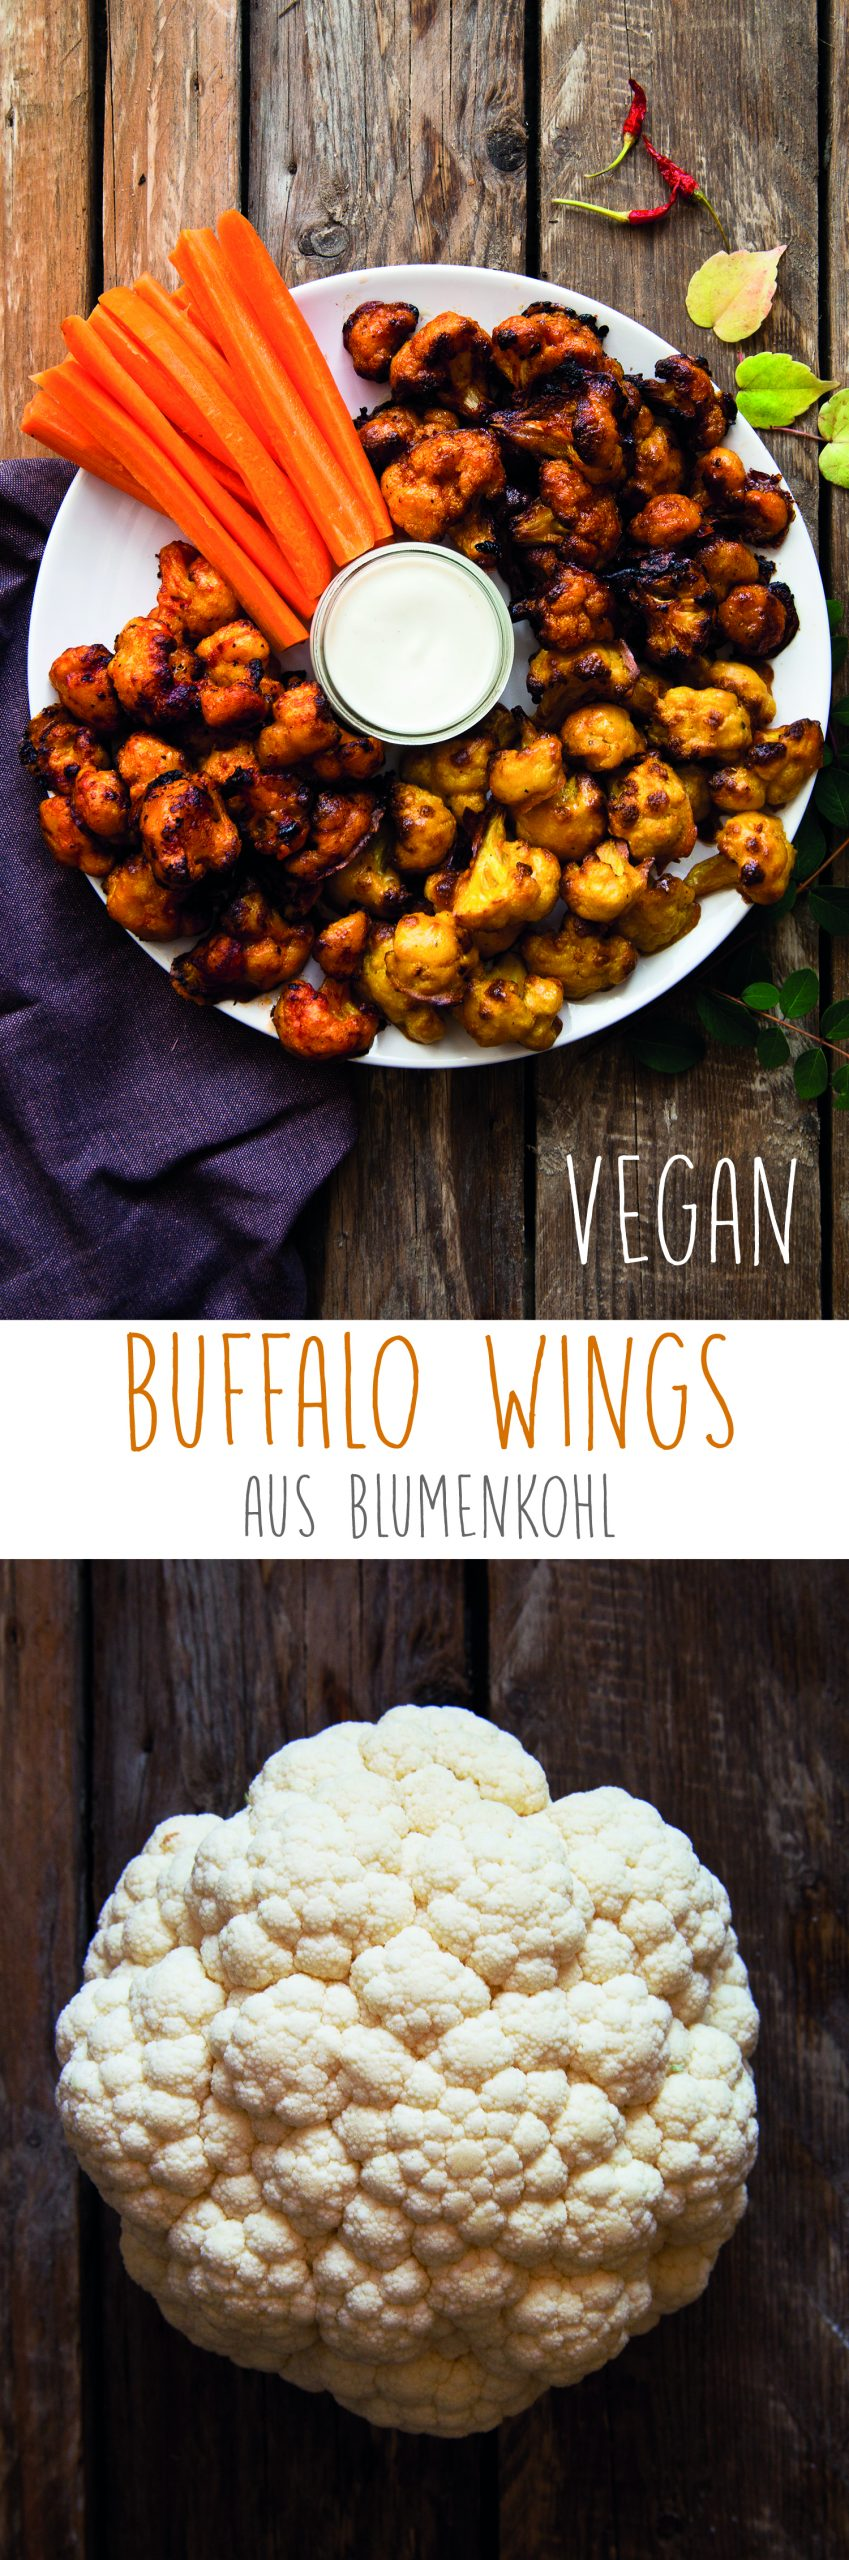 Buffalowings vegan